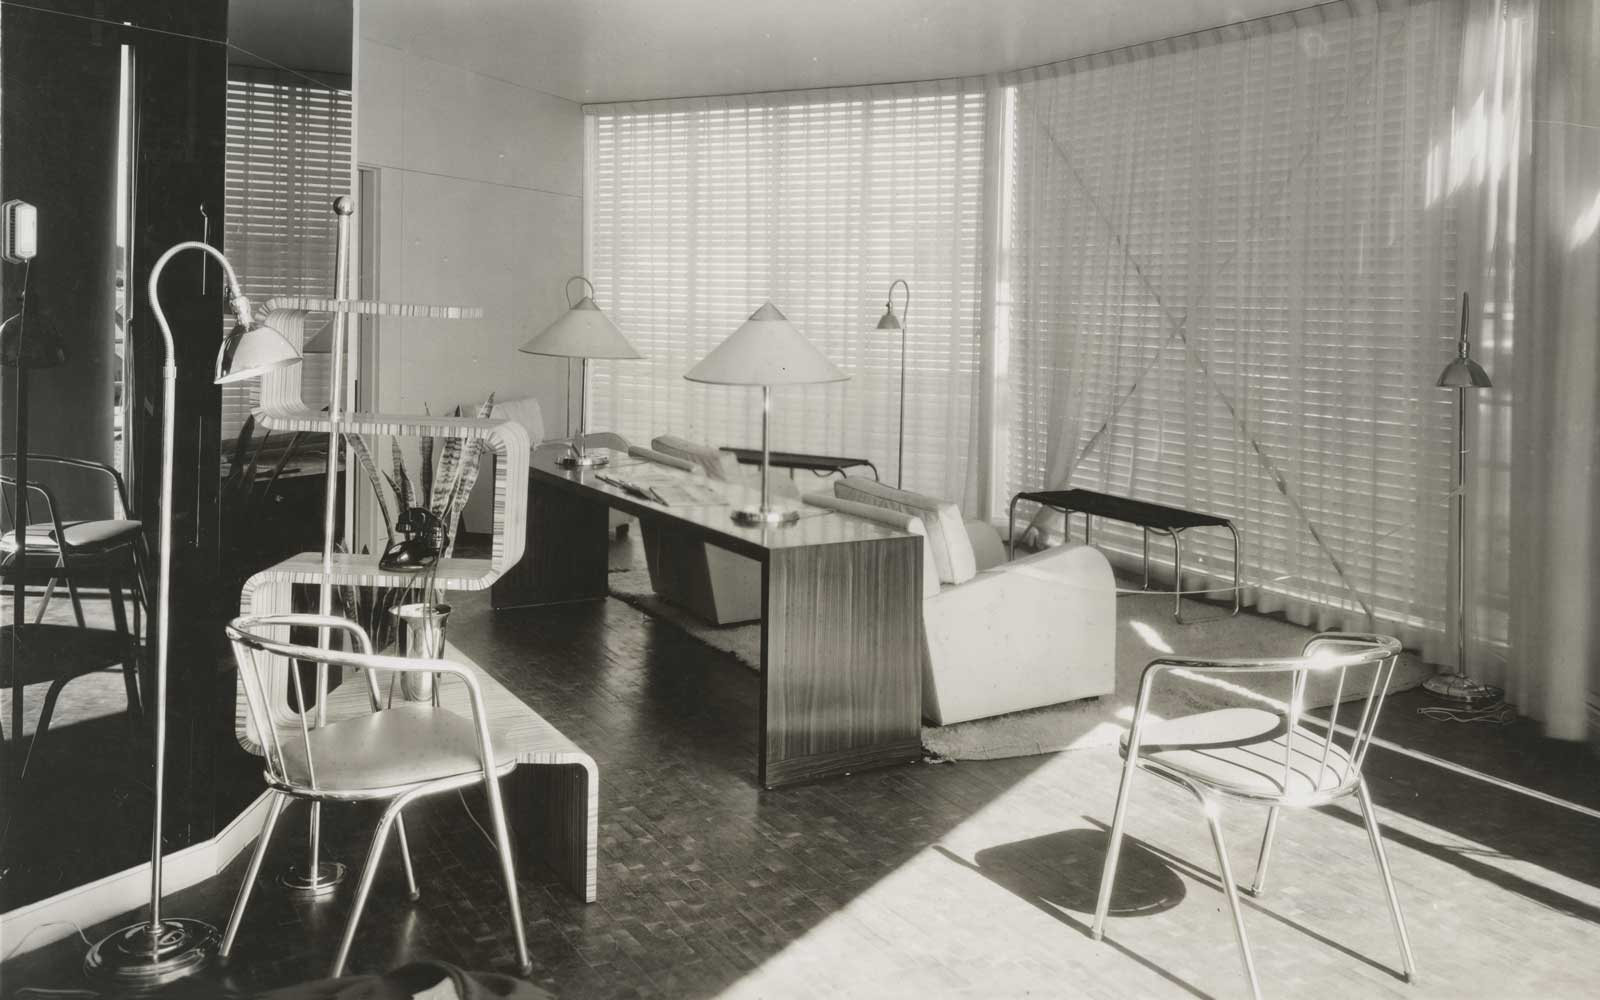 Original interior of the House of Tomorrow